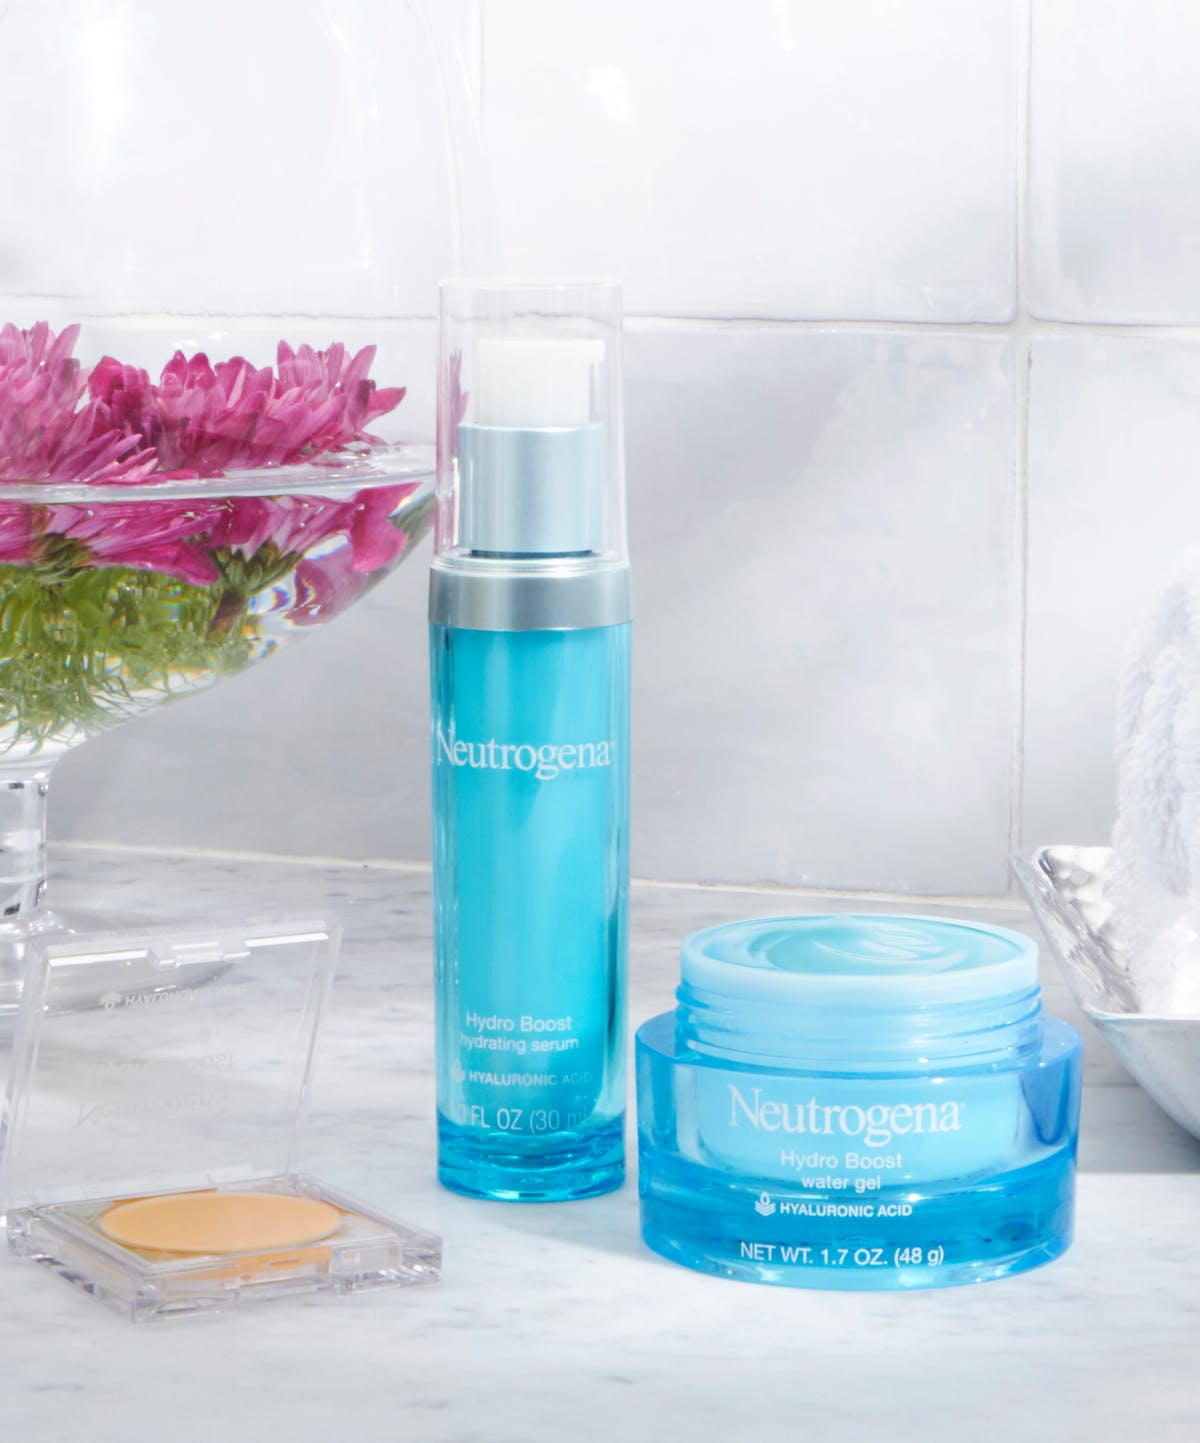 Hydro Boost Hydrating Face Serum With Hyaluronic Acid Neutrogena